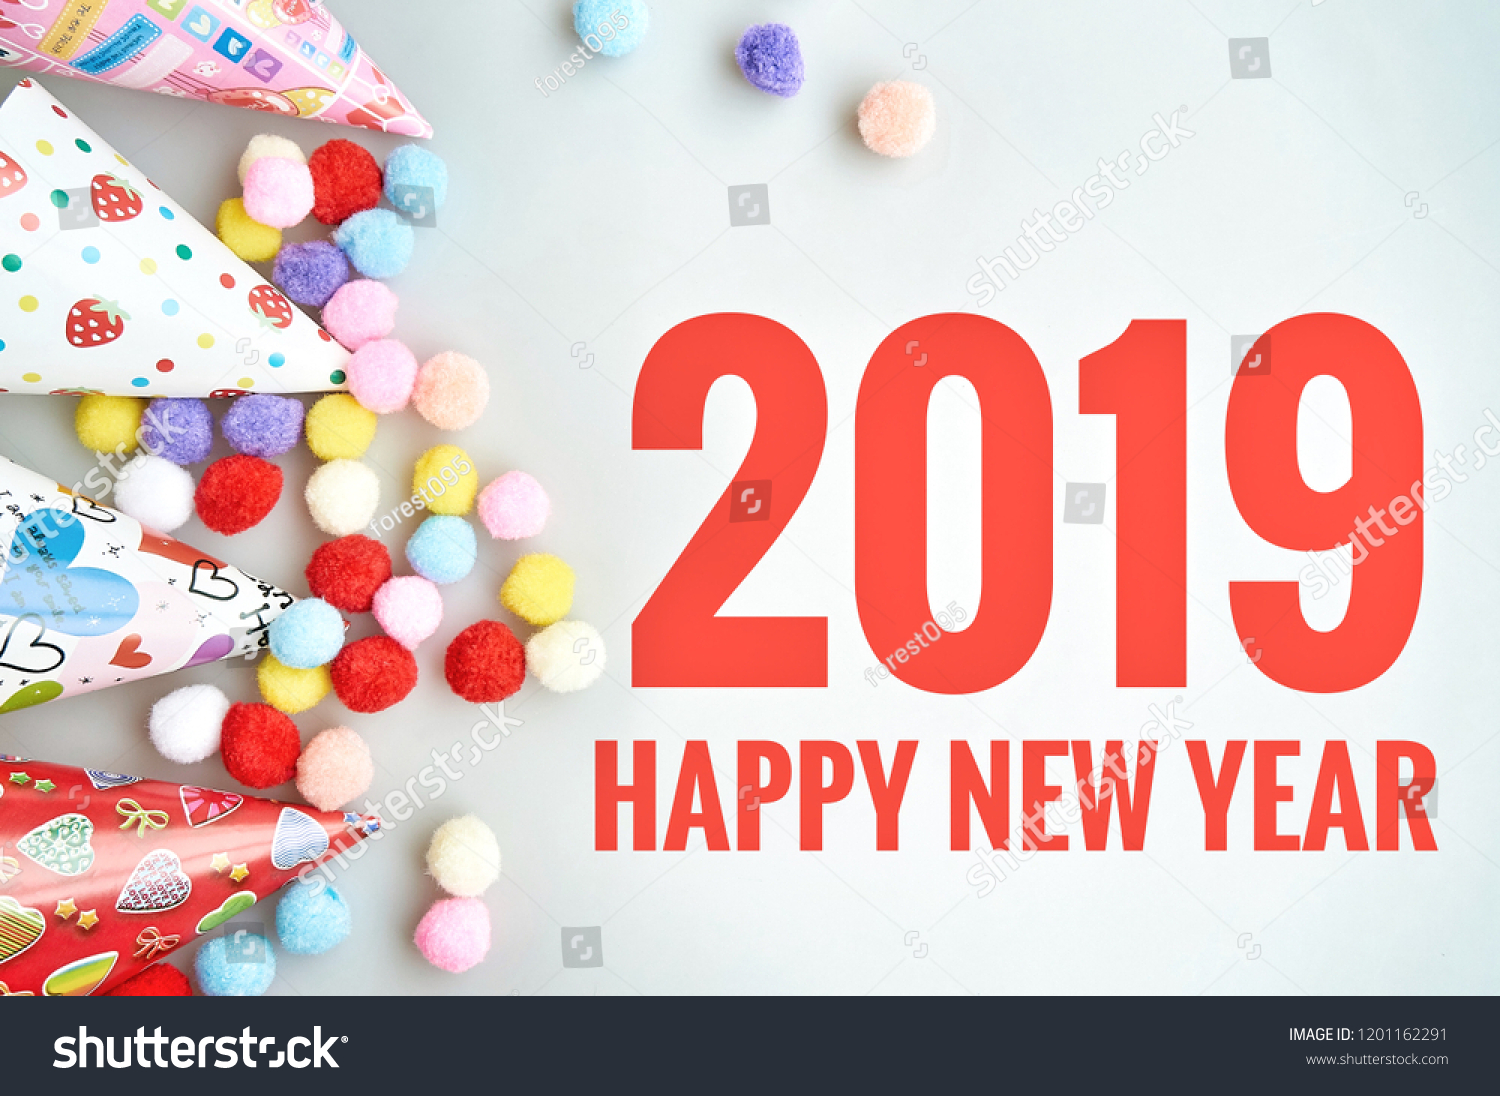 happy new year 2019 greeting card on gray background